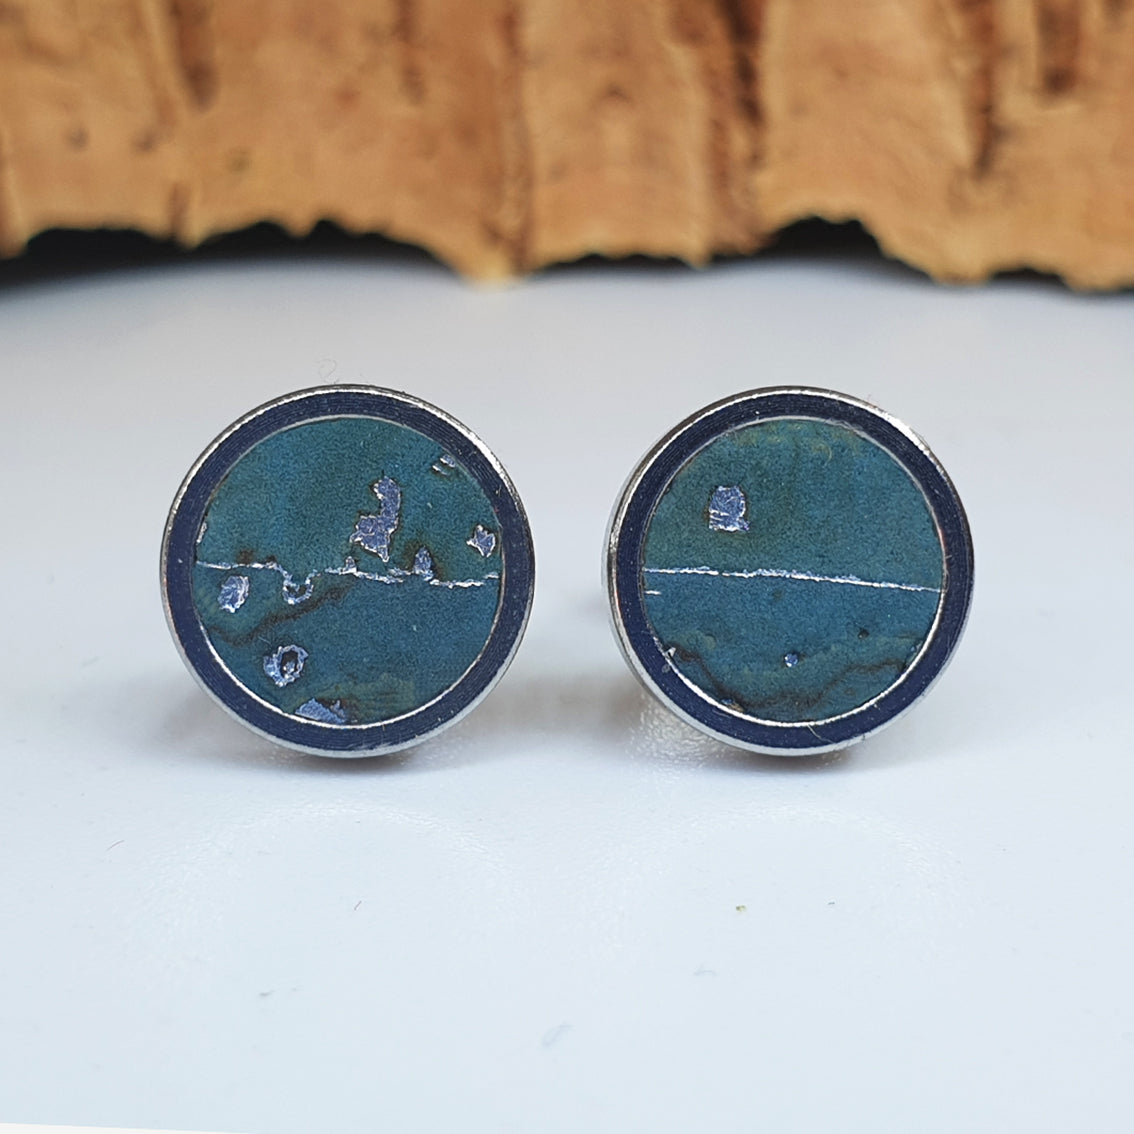 Fabrikk Cork Stud Earrings | Medium | Aqua Silver | Vegan Leather